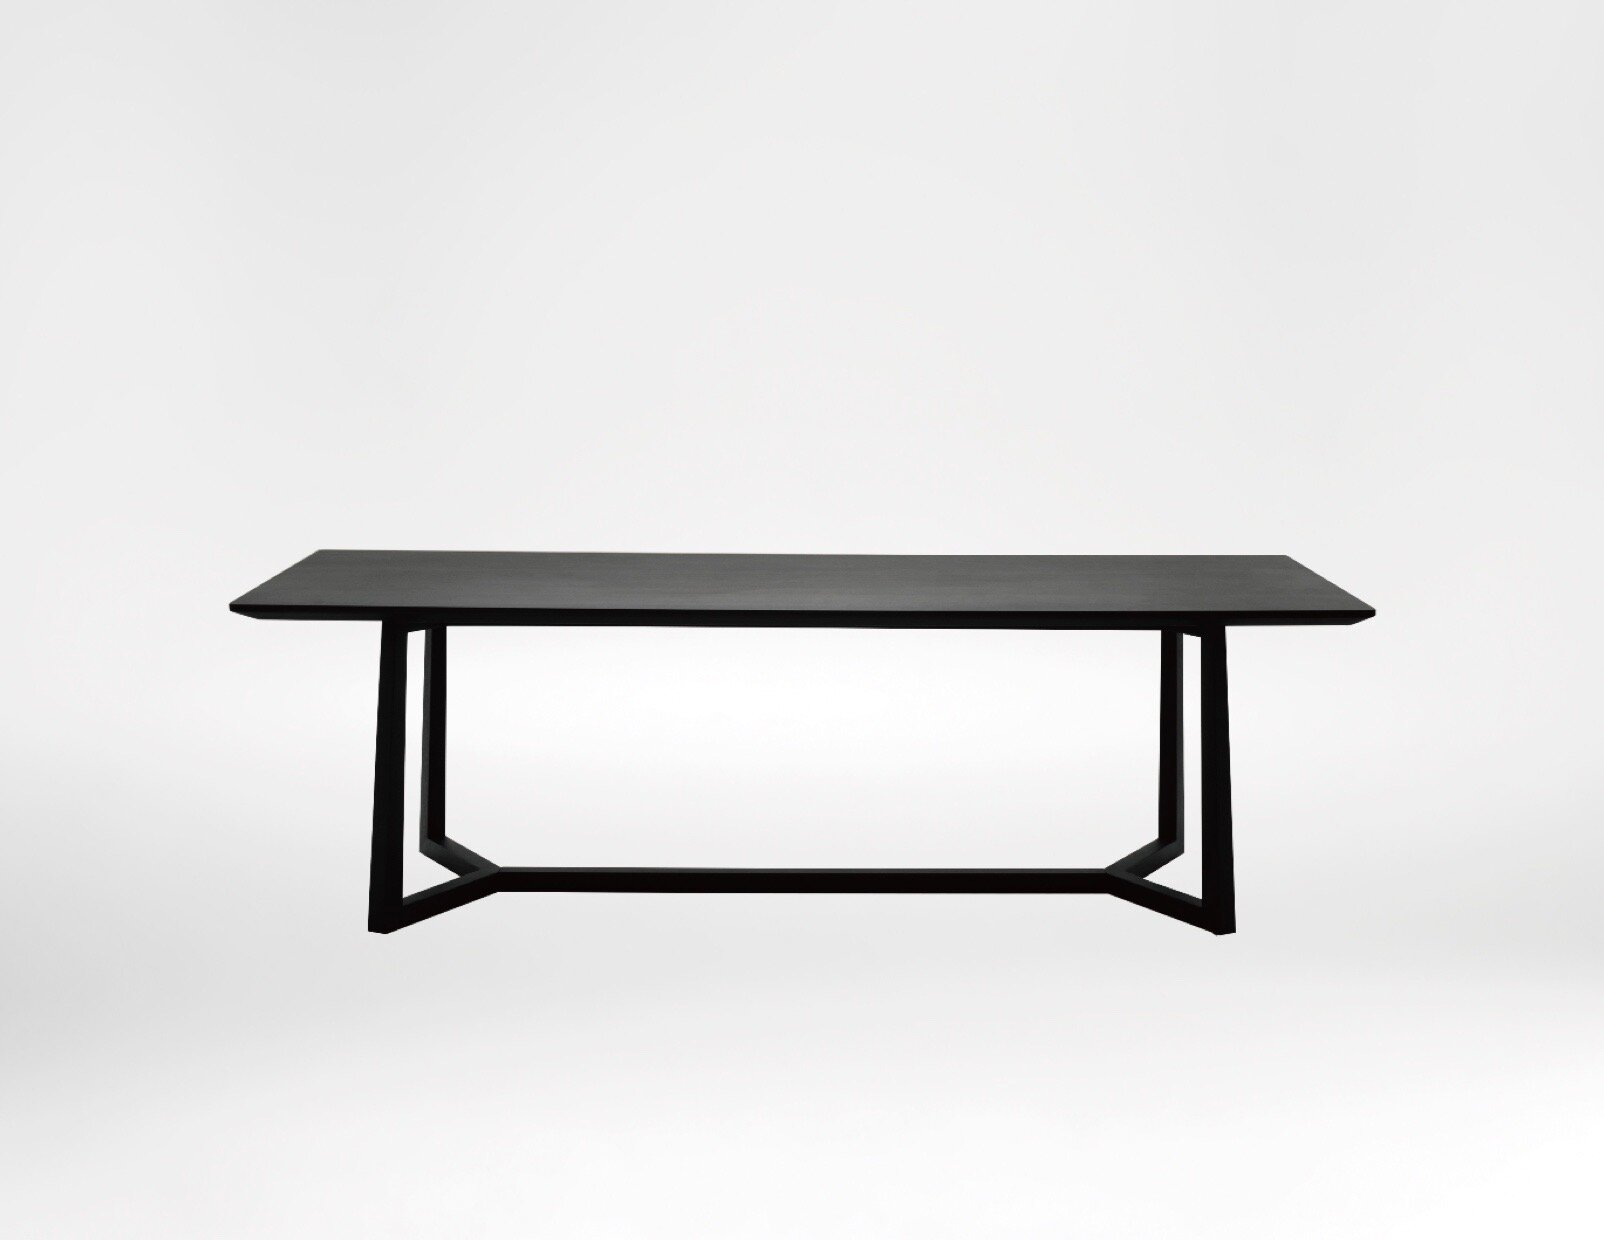 Vessel Dining table - Precise angular lines and slim delicate legs make the Vessel modern designer dining table is one of unrivalled beauty.